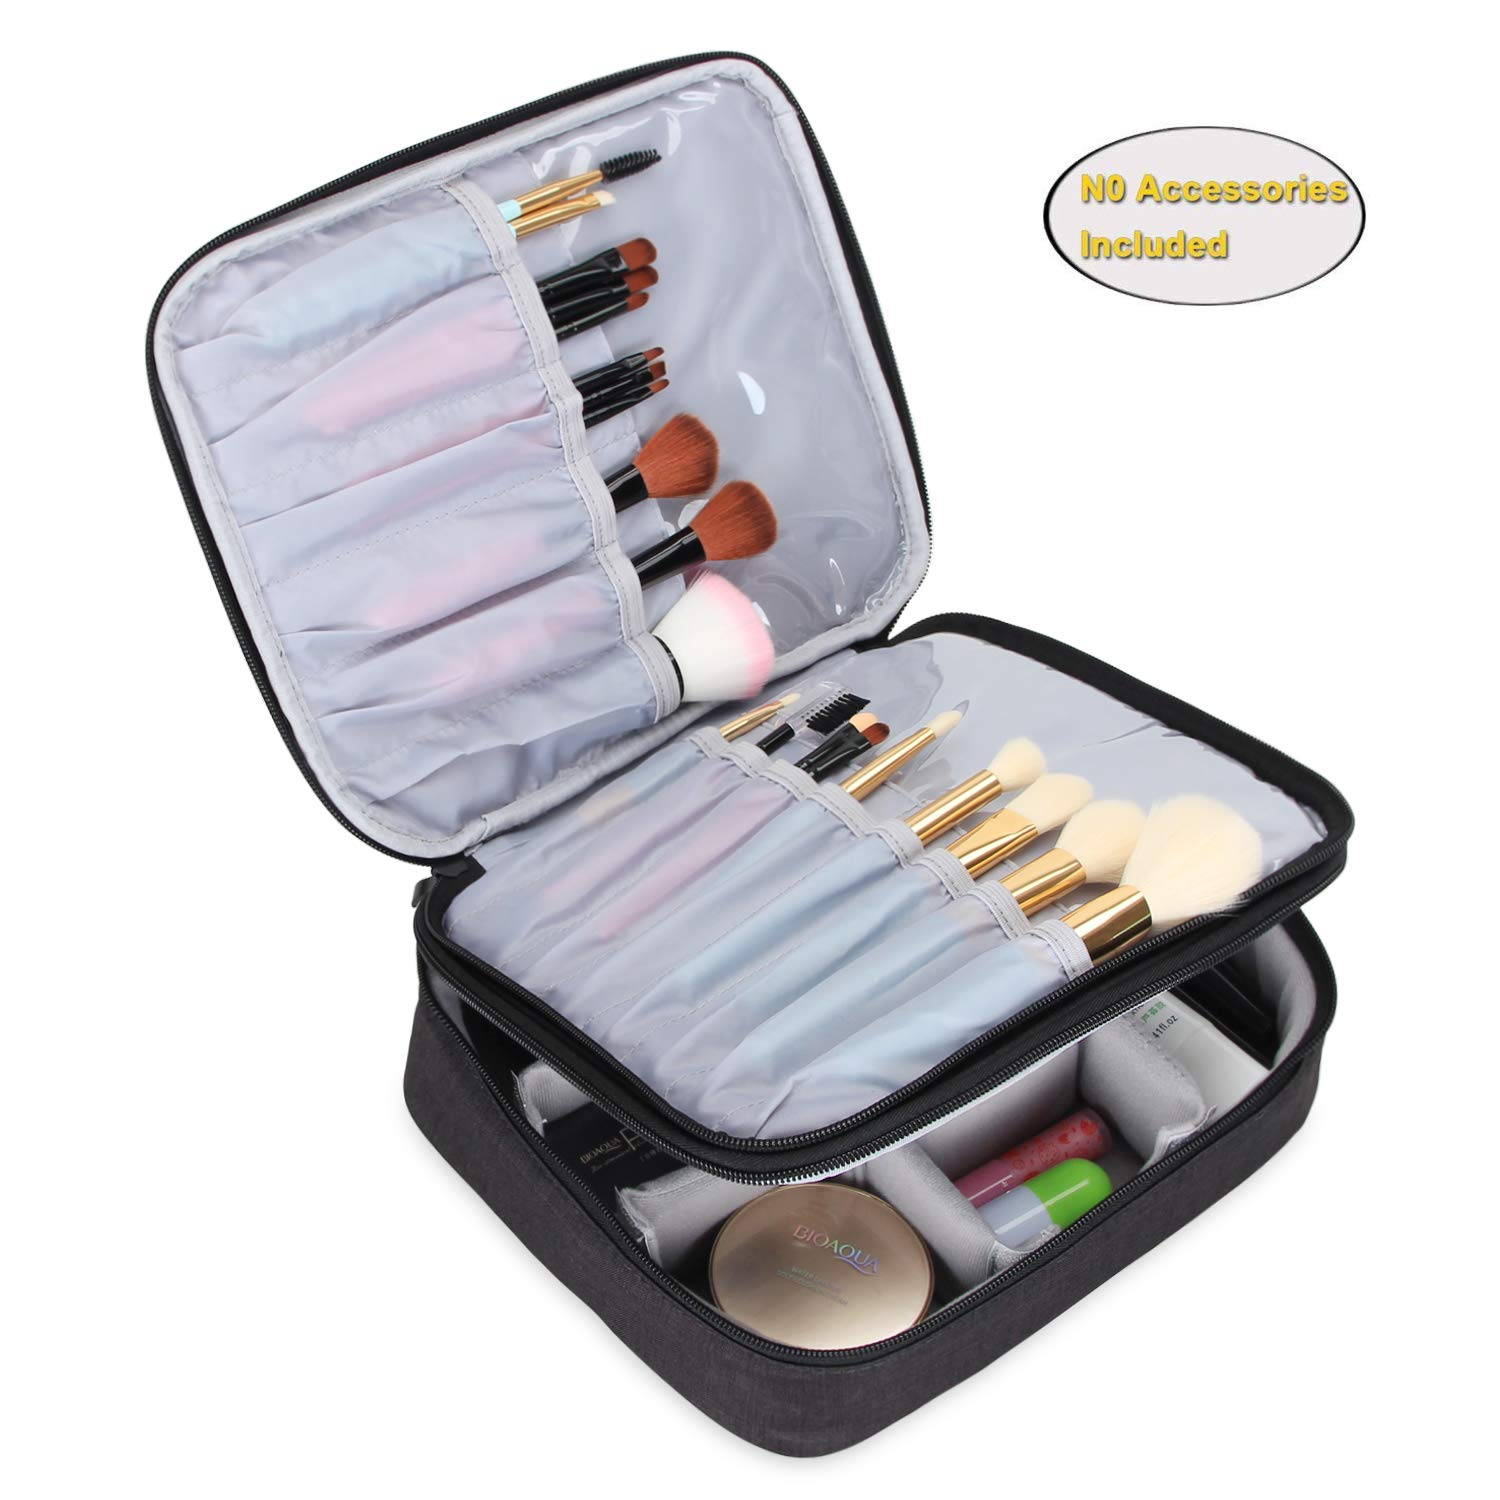 "Teamoy Travel Makeup Brushes Bag(up to 10""), Professional Makeup Train Case for Makeup Brushes and cosmetics, Portable and Multifunctional-Large, ..."